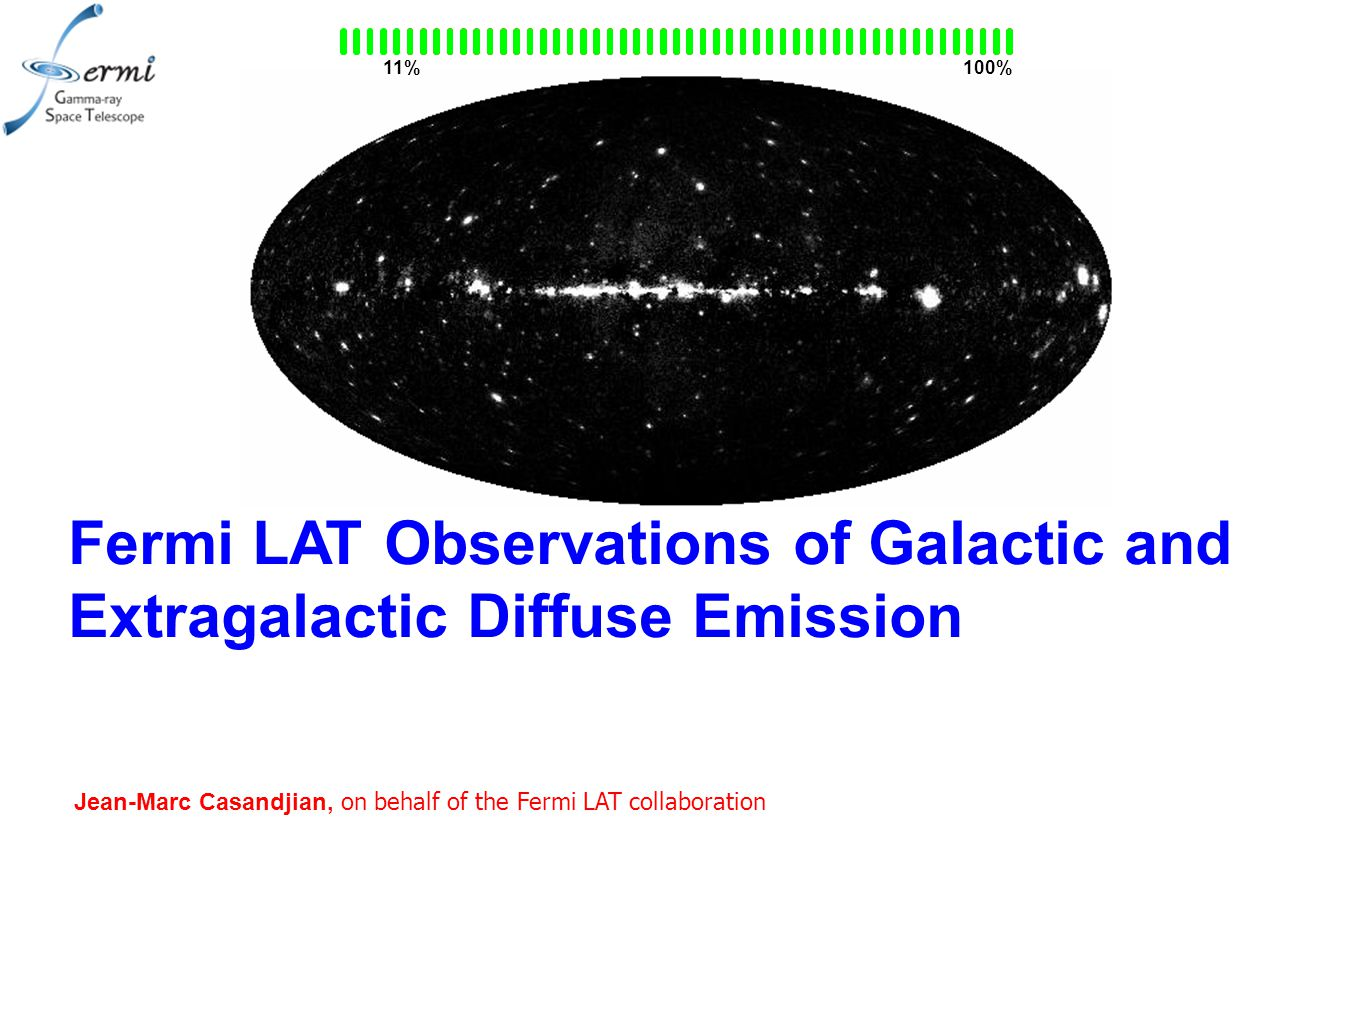 Fermi LAT Observations of Galactic and Extragalactic Diffuse Emission Jean-Marc Casandjian, on behalf of the Fermi LAT collaboration 100%11%